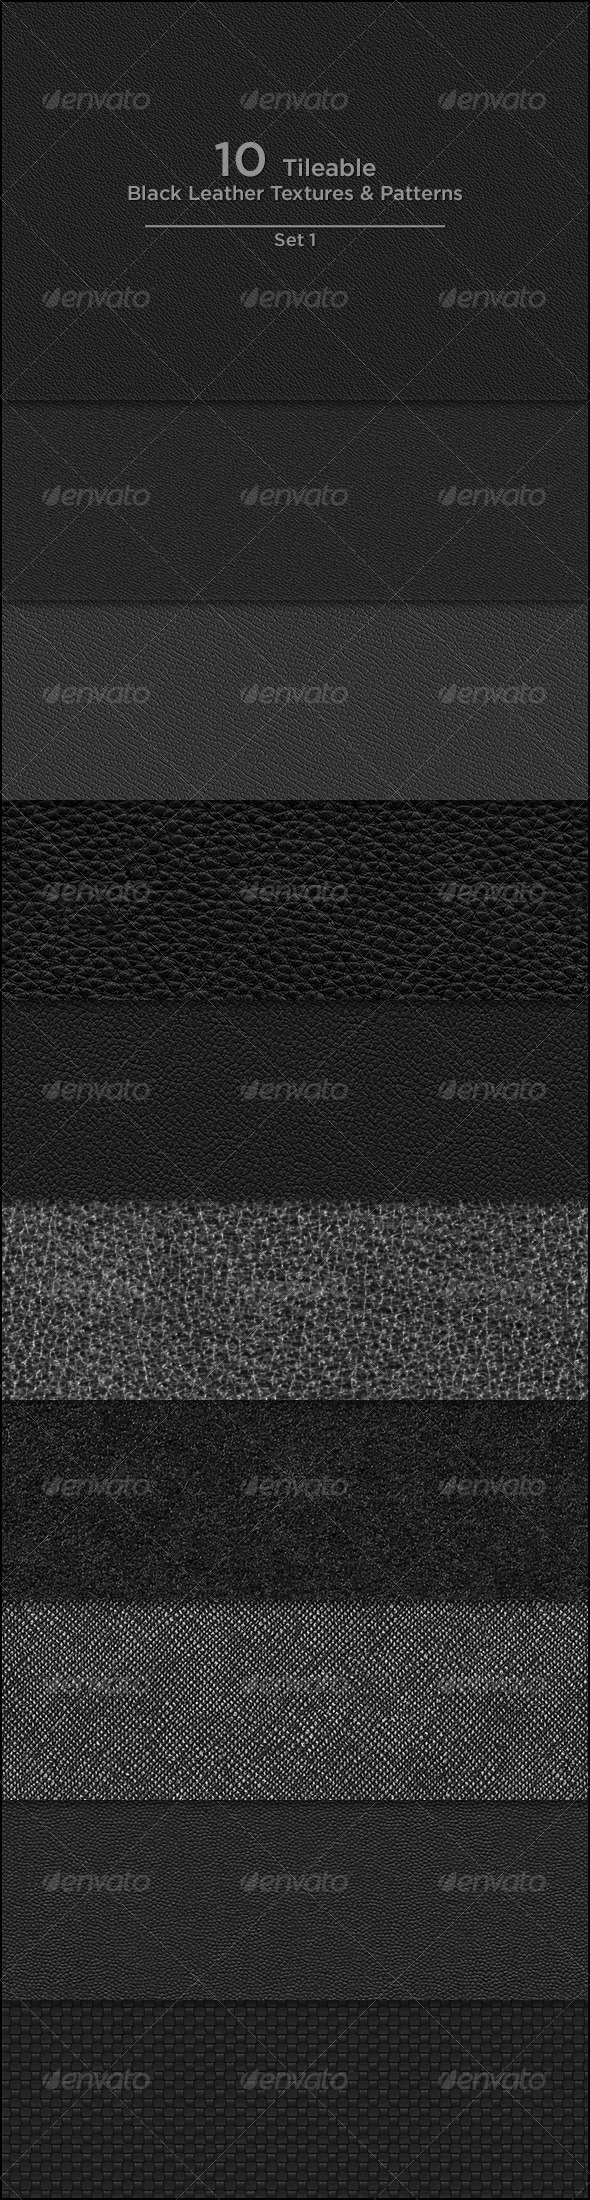 GraphicRiver 10 Tileable Black Leather Textures Patterns 3922533